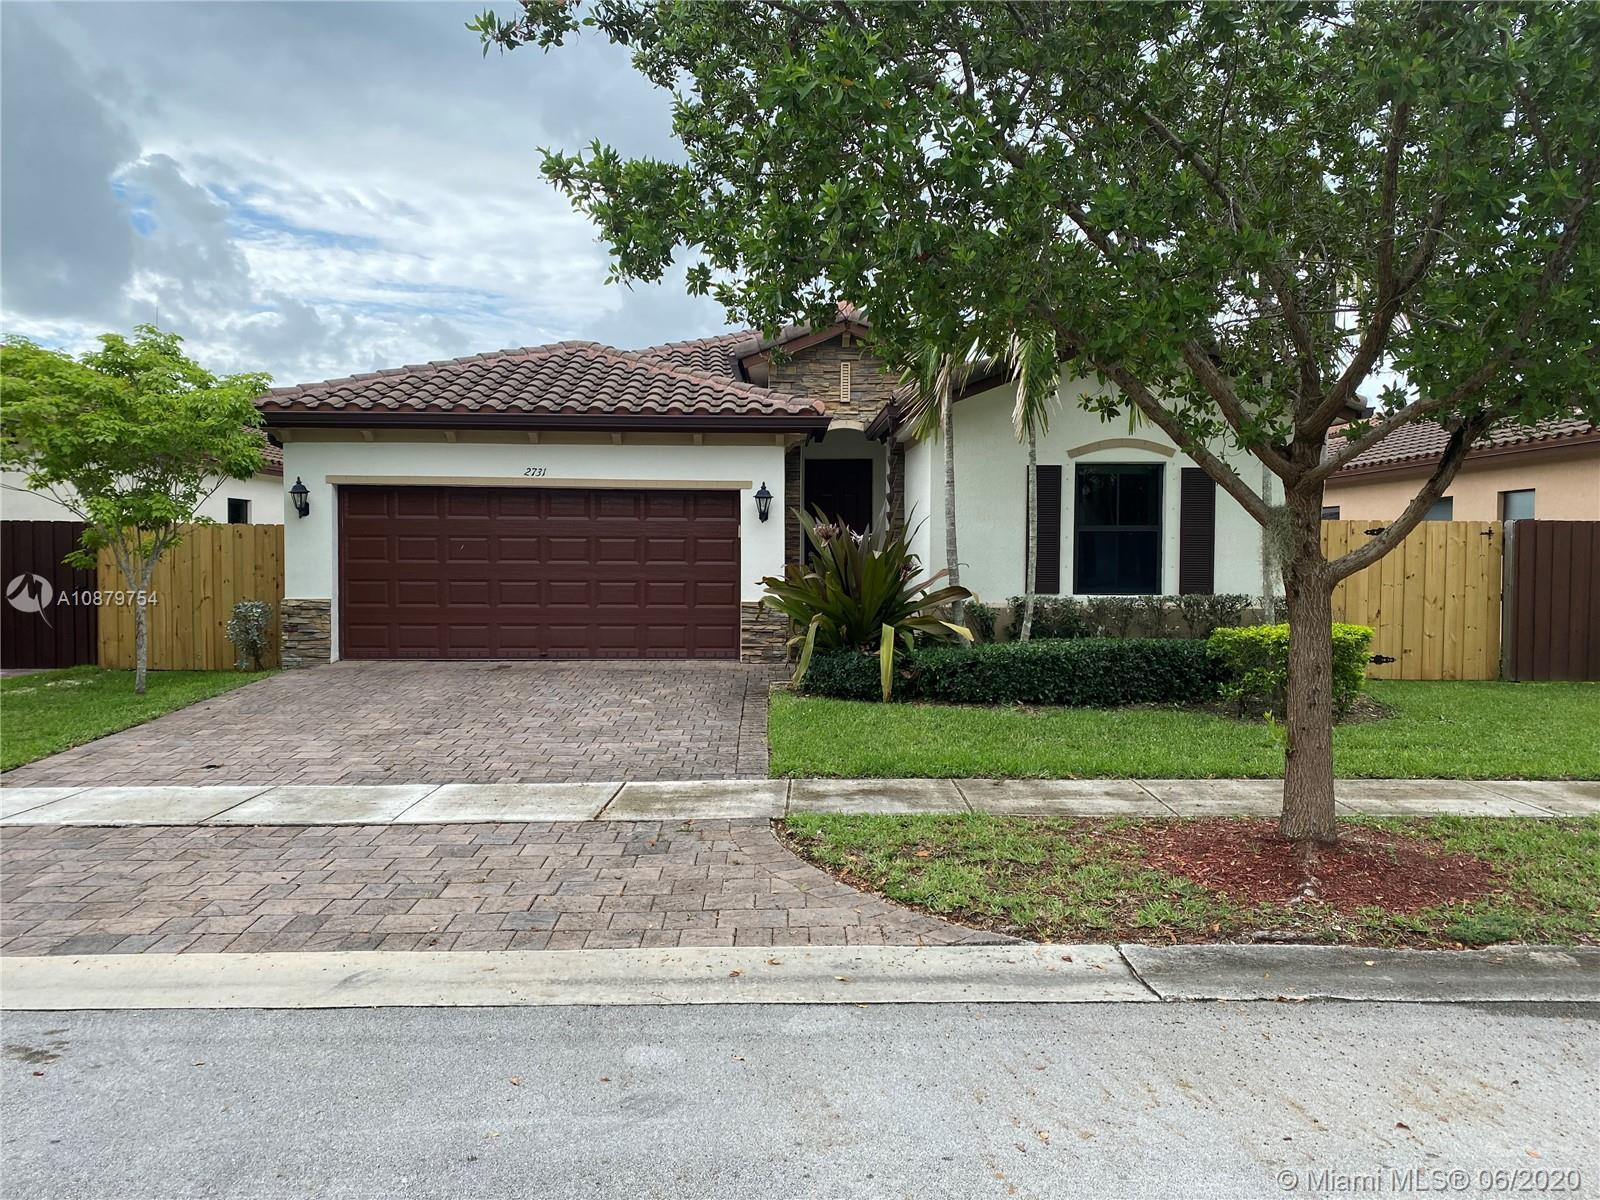 2731 NE 1st St Property Photo - Homestead, FL real estate listing